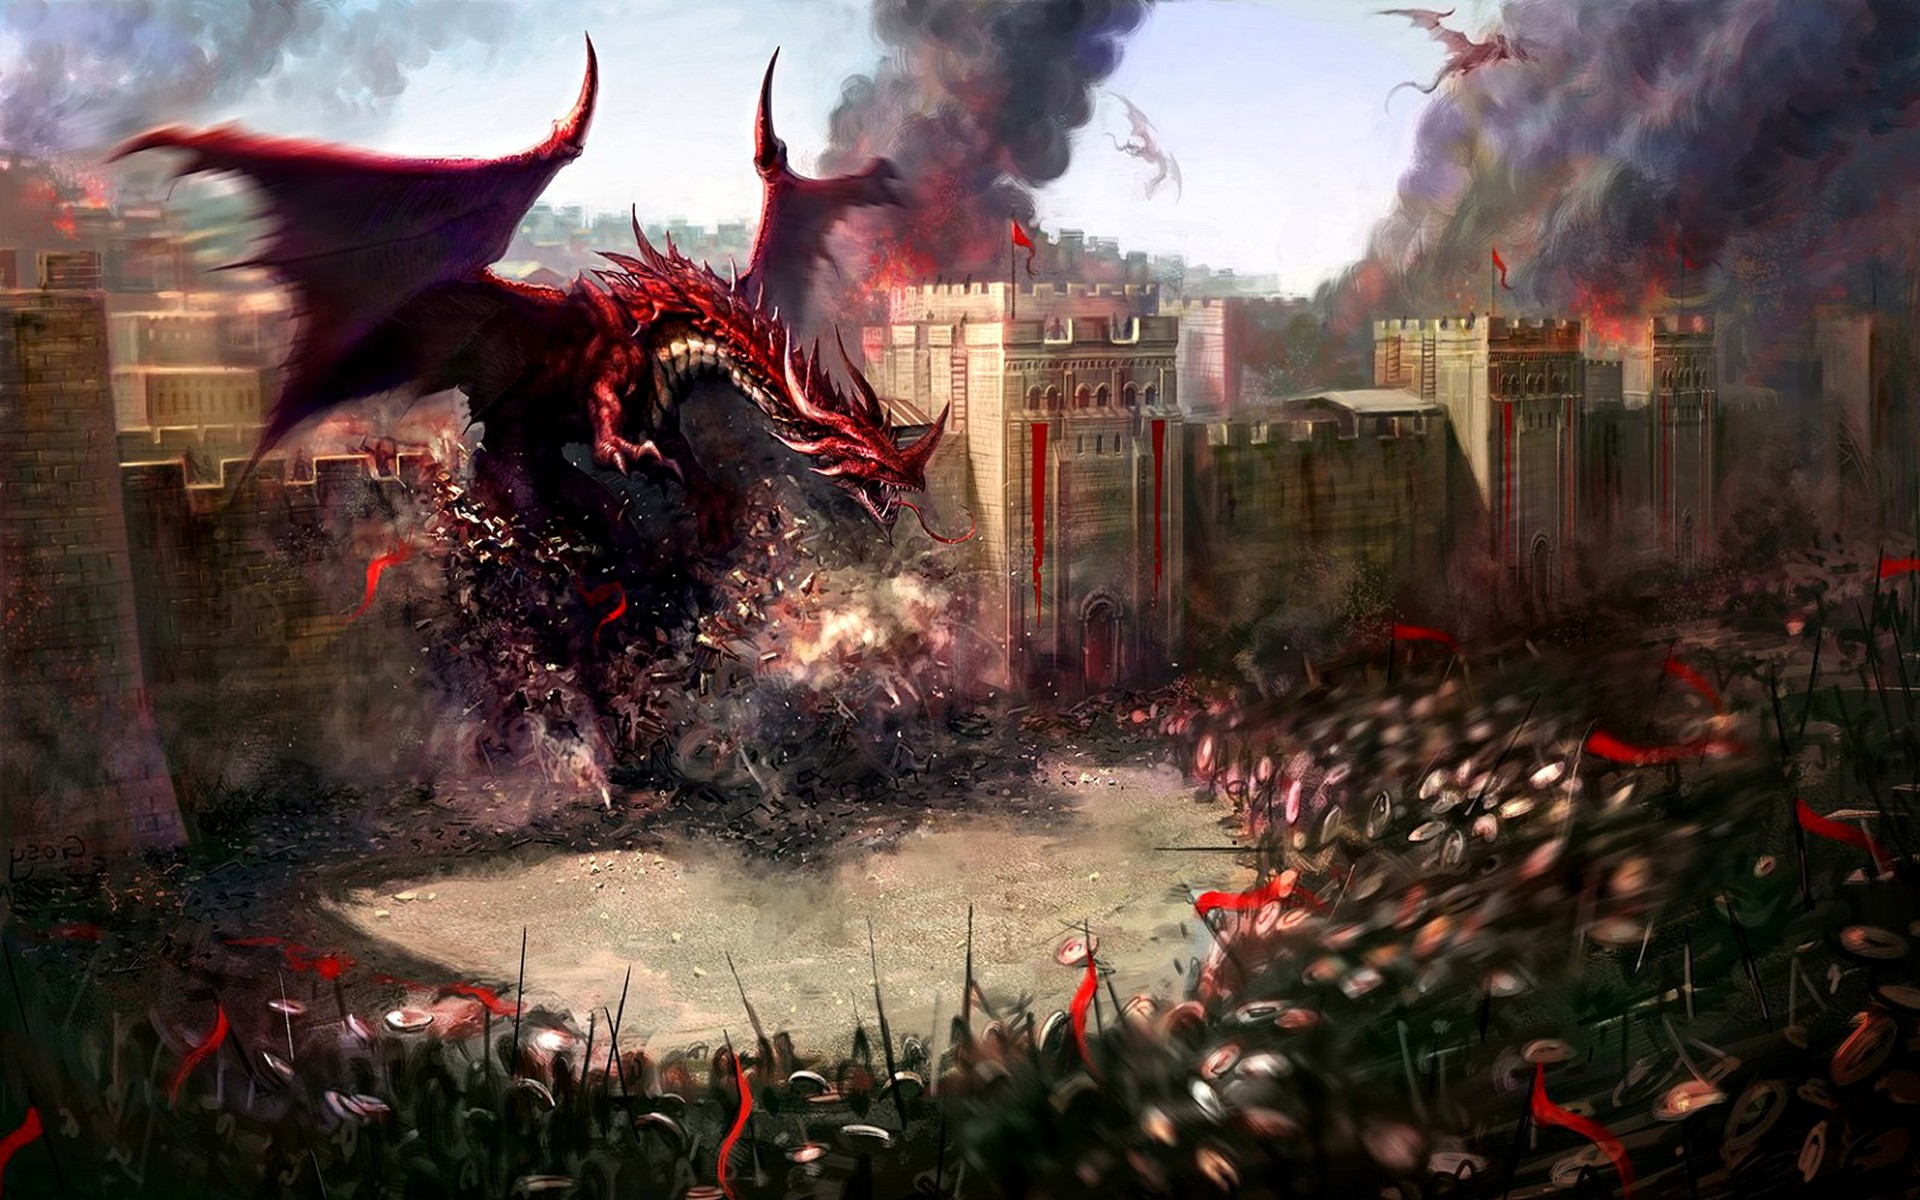 dragon-against-the-army-fantasy-hd-wallpaper-1920x1200-6650.jpg